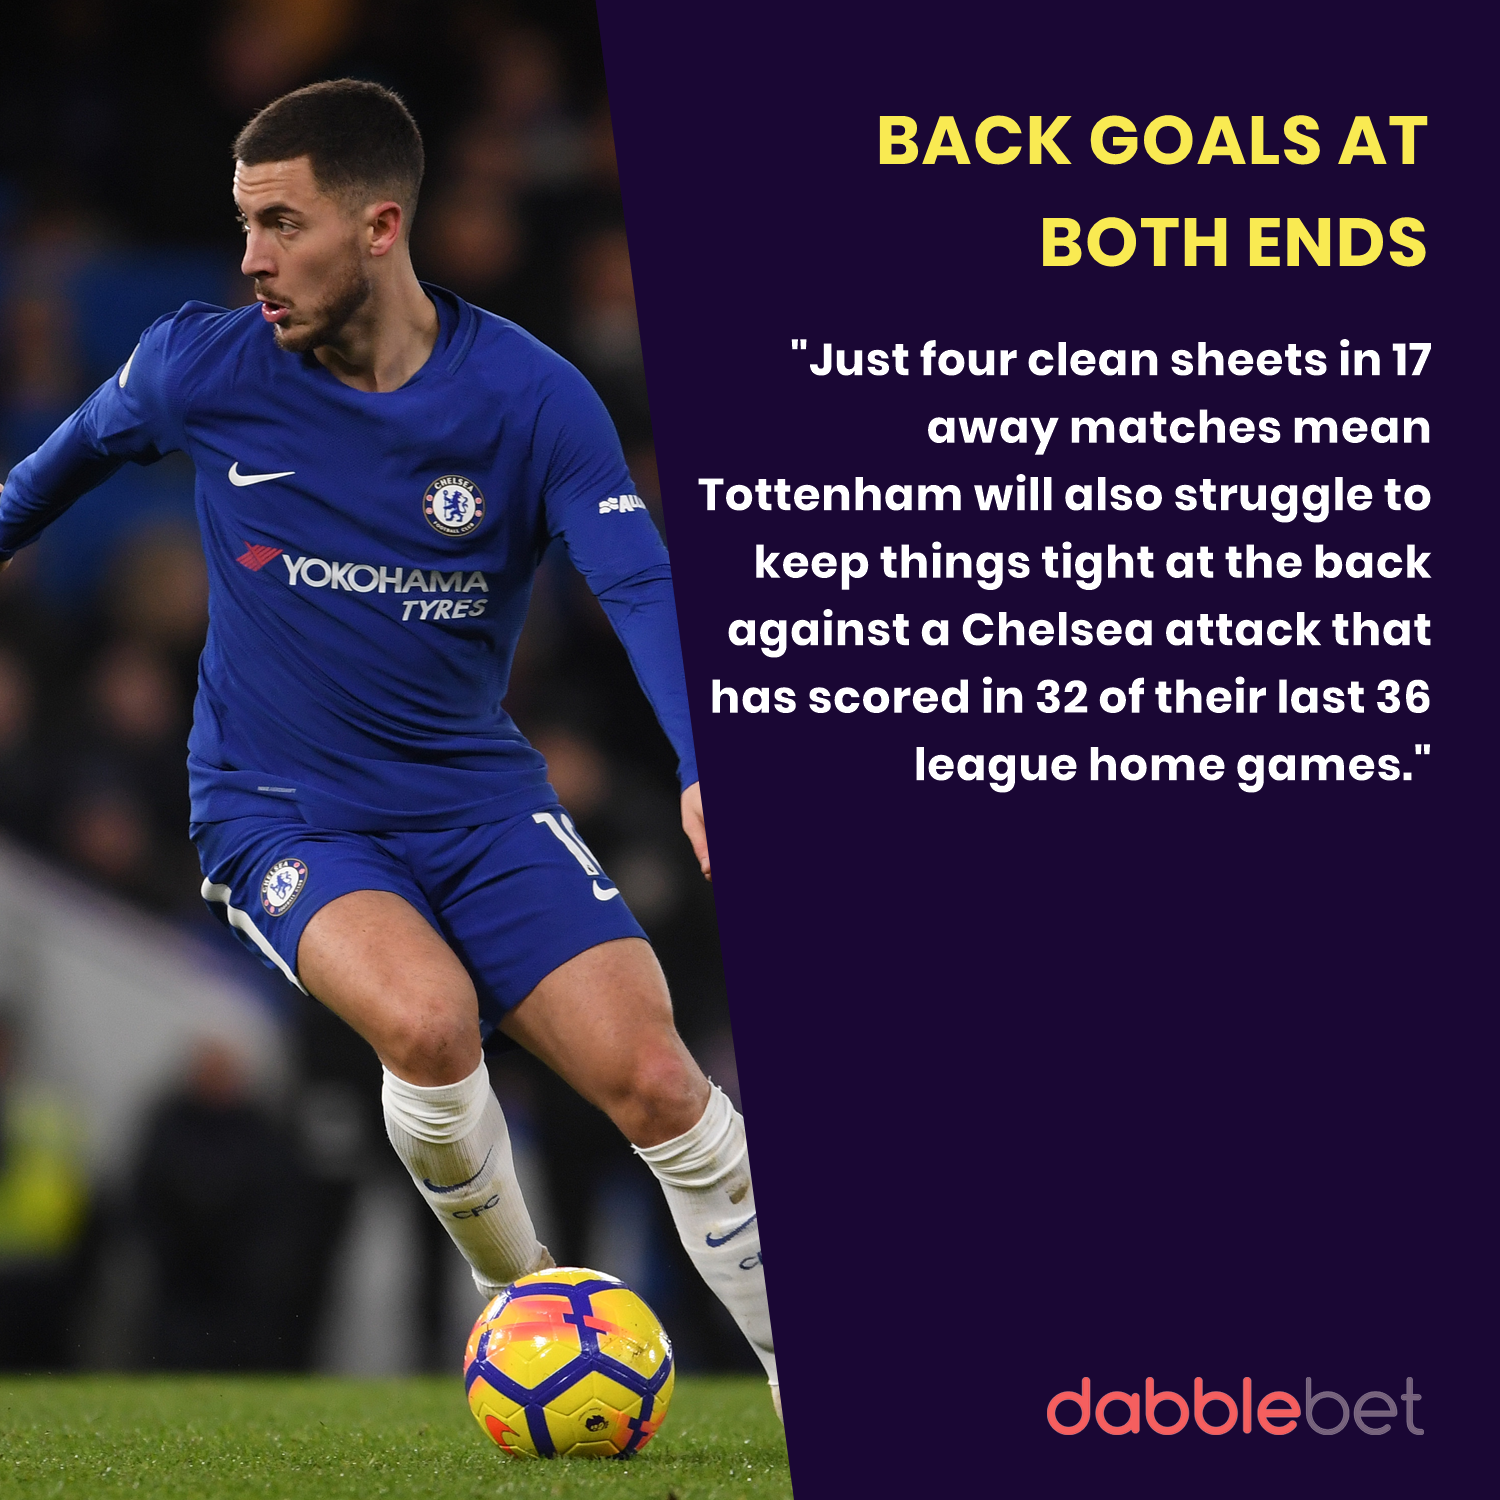 Chelsea v Tottenham Betting preview